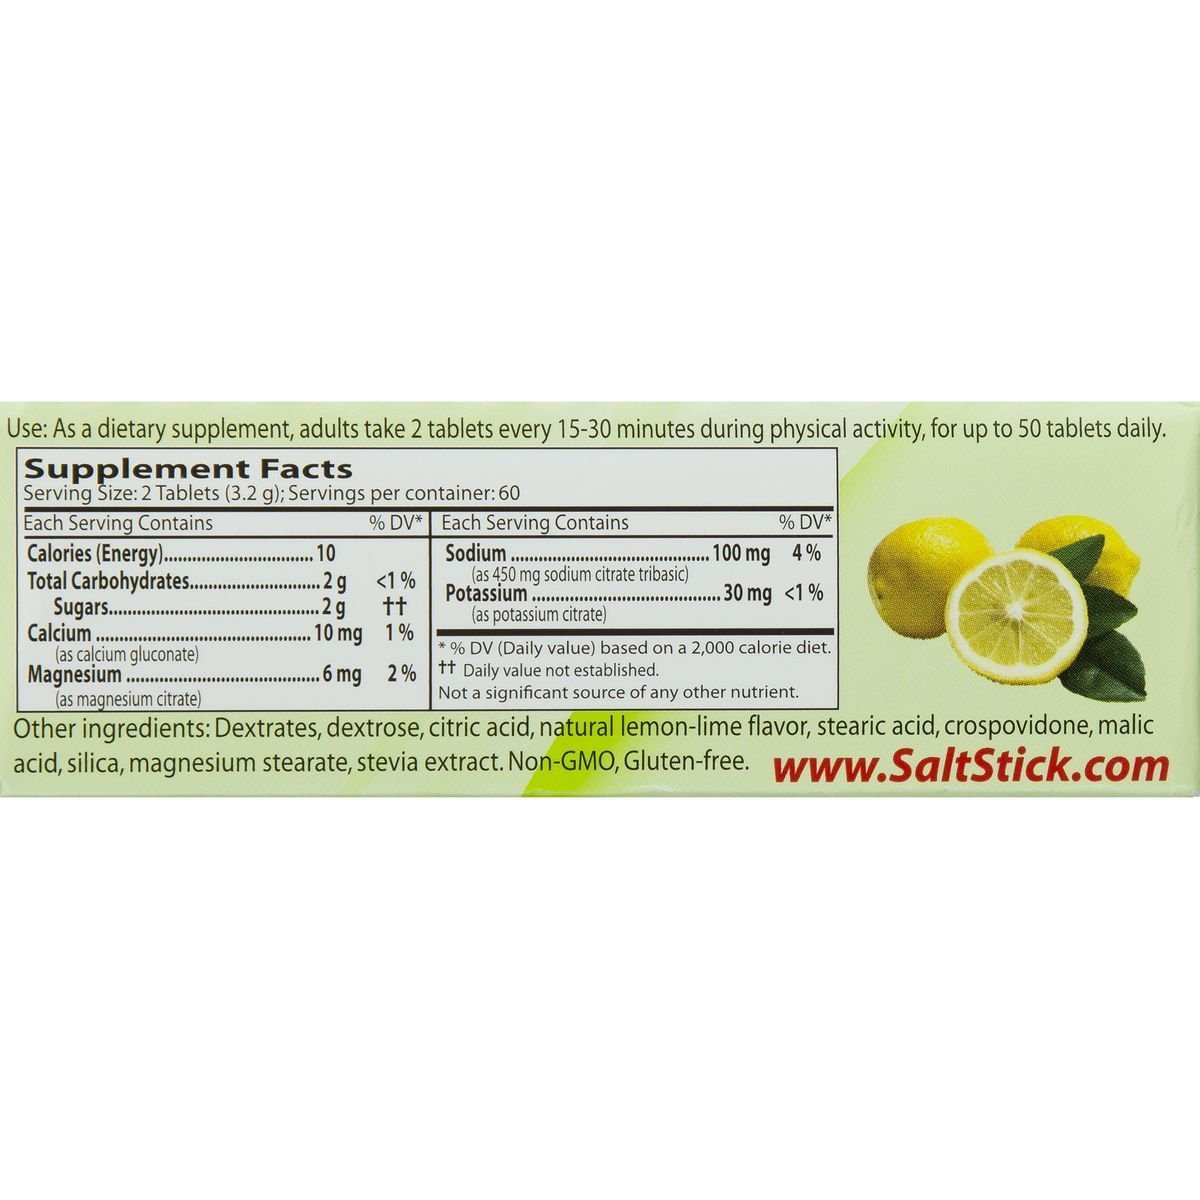 SaltStick Fastchews, Electrolyte Replacement Tablets for Rehydration, Exercise Recovery, Youth Adult Athletes, Hiking, Hangovers, Sports Recovery, 12 Packets of 10 Tablets, Lemon Lime Flavor